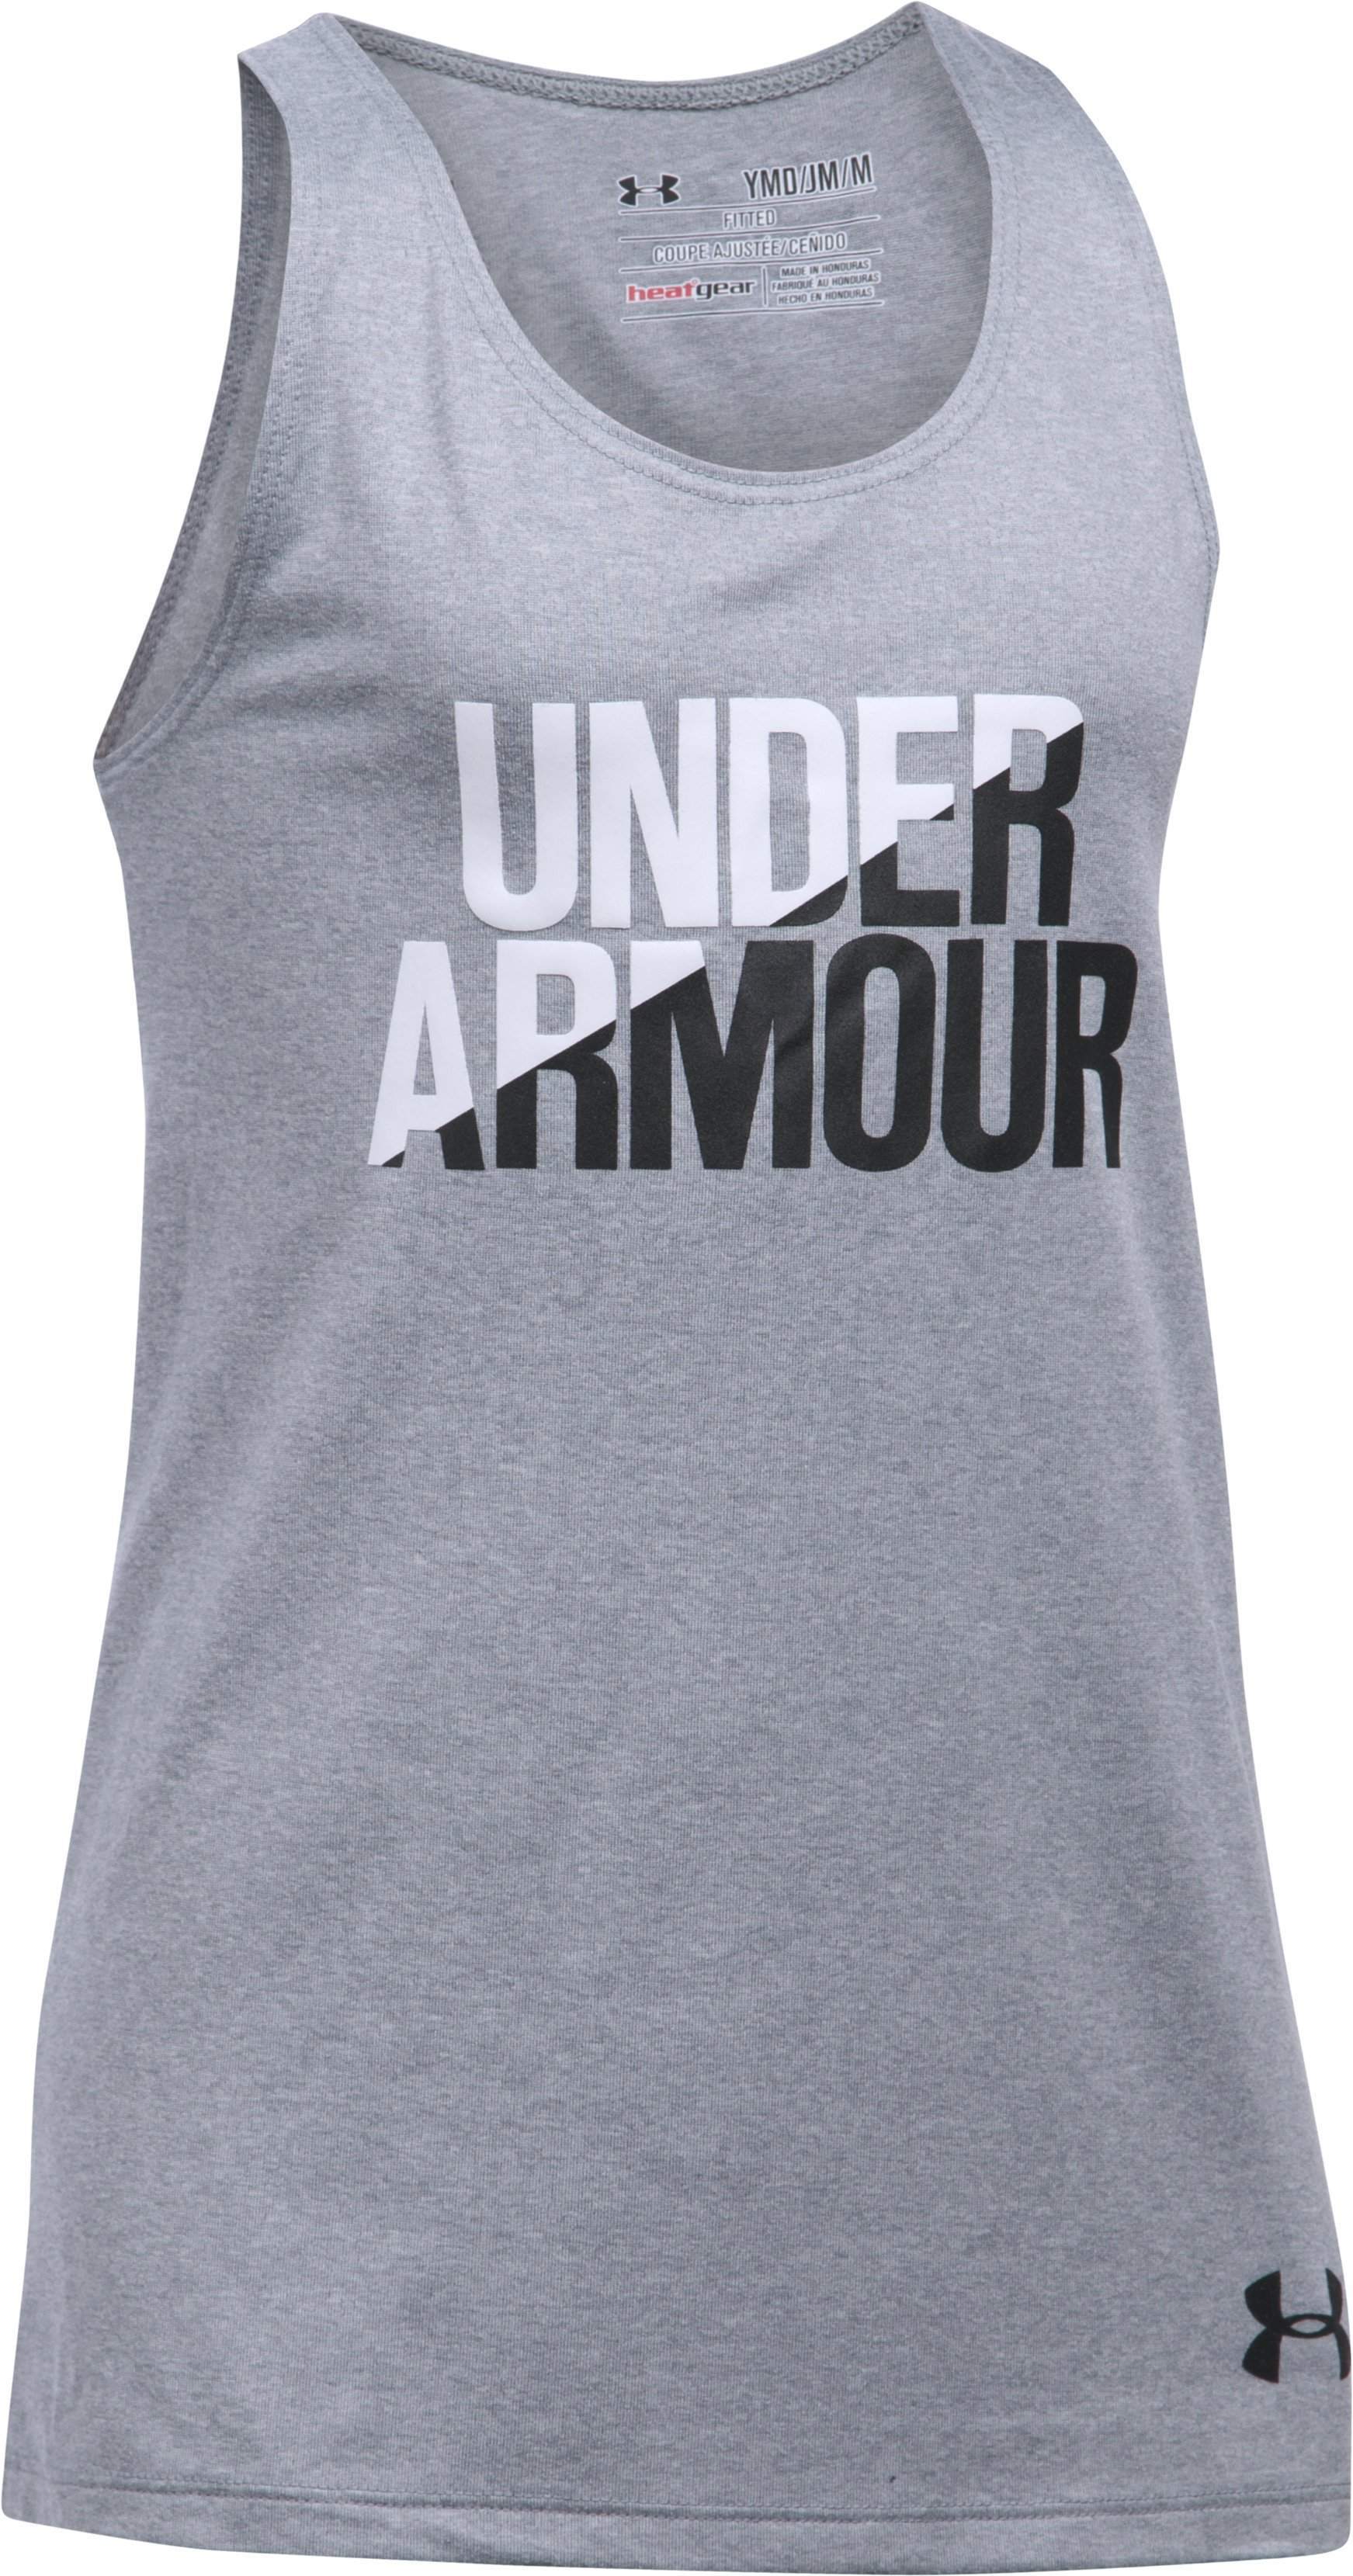 Girls' UA Under Armour Tank, True Gray Heather